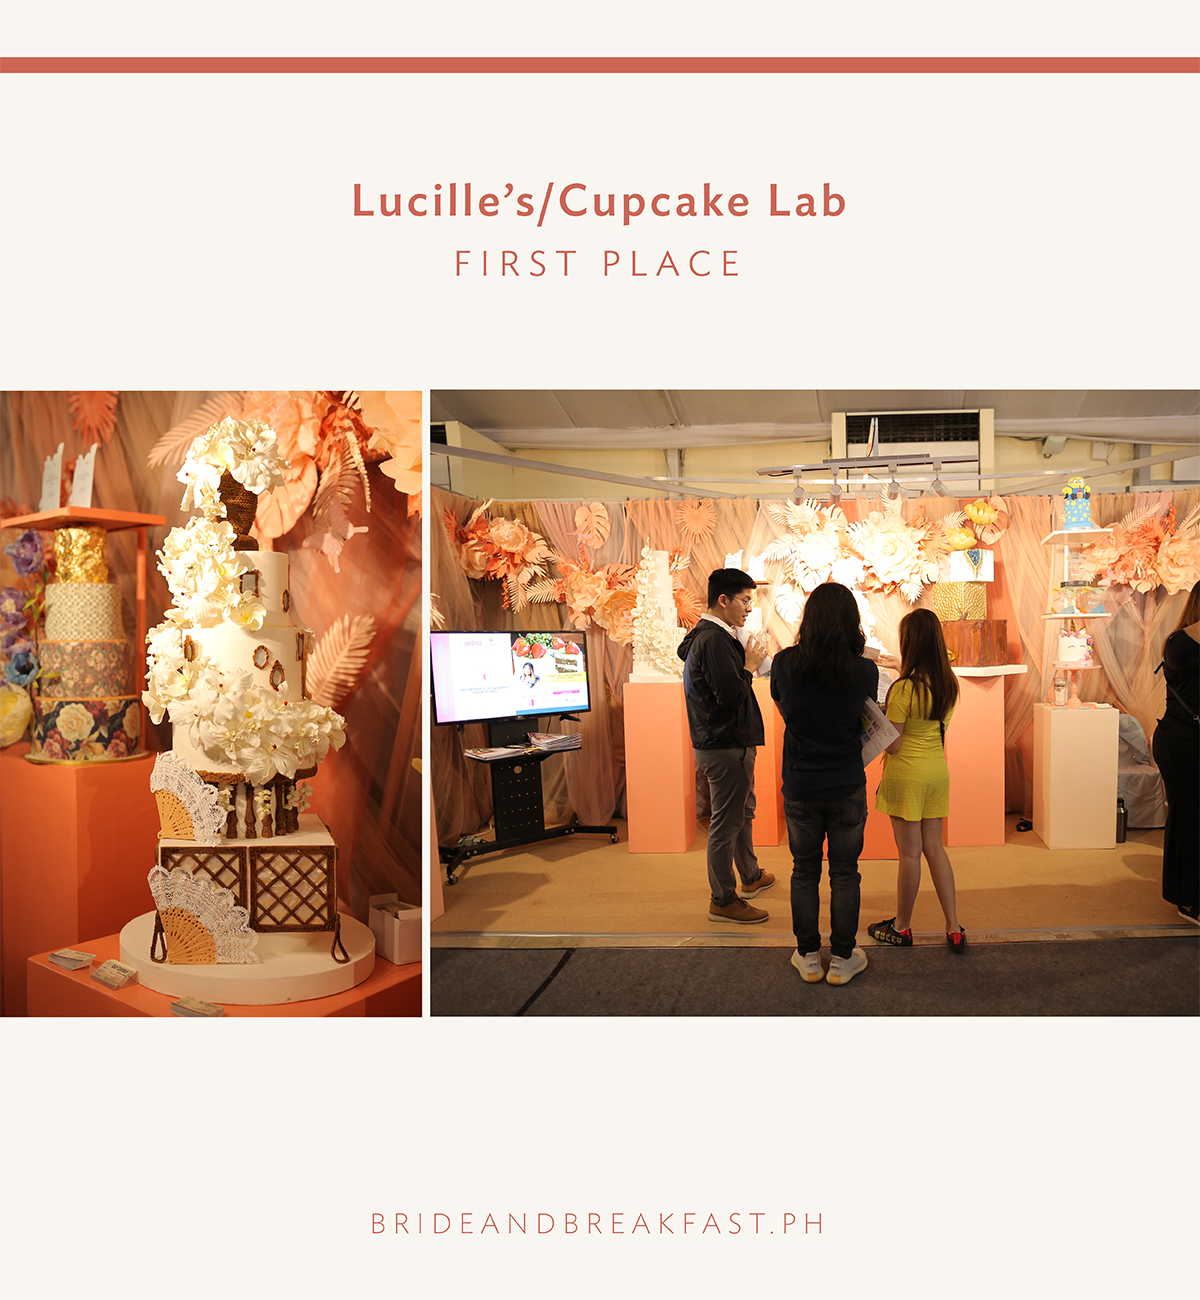 First Place - Lucille's/Cupcake Lab